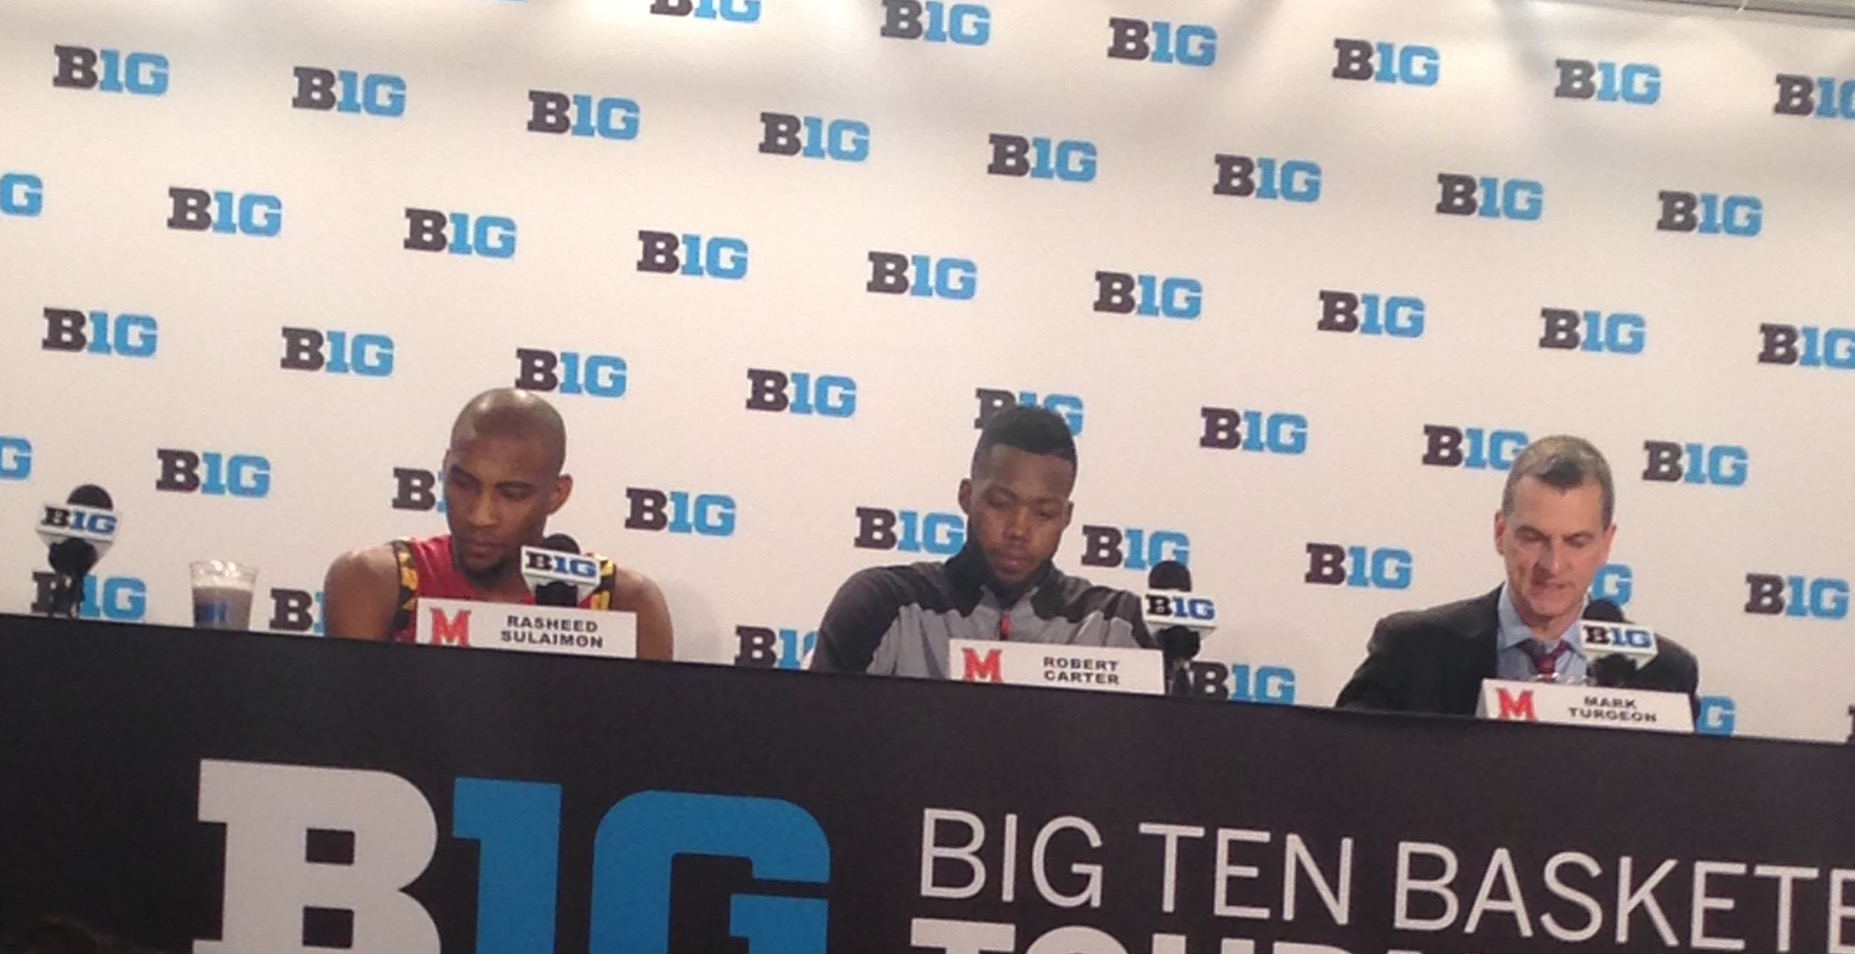 Rasheed Sulaimon (left), Robert Carter (middle), Mark Turgeon (right) address the media after UMD's 64-61 loss against Michigan State in the Big Ten tournament semifinals on March 12, 2016. (Photo courtesy of Troy Jefferson).